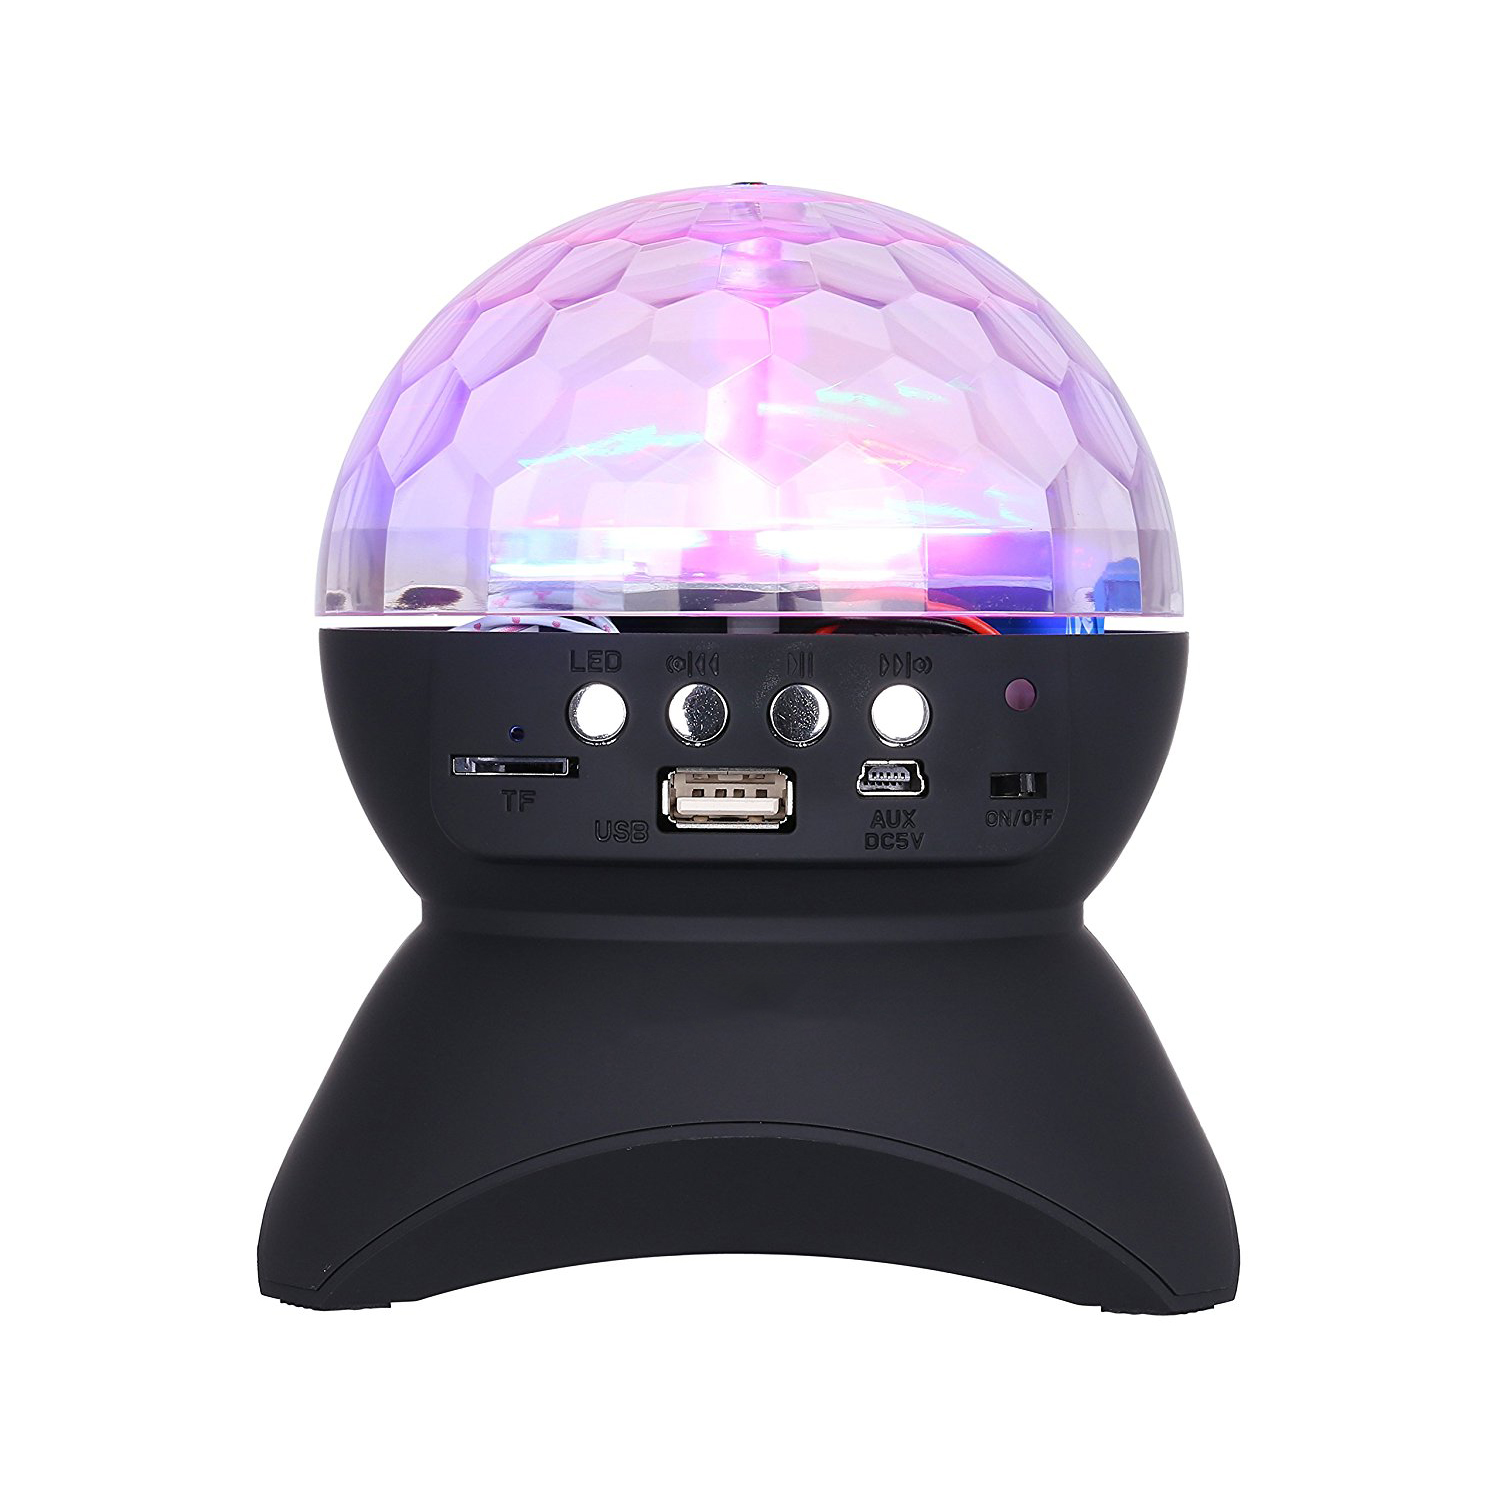 Led Stage Light with Wireless Bluetooth Speaker Support TF Card , Music , FM radio with USB for Parties , DJ etc. - Black sdy 021 wireless bluetooth v3 0 speaker w fm tf micro usb usb alarm clock black silver